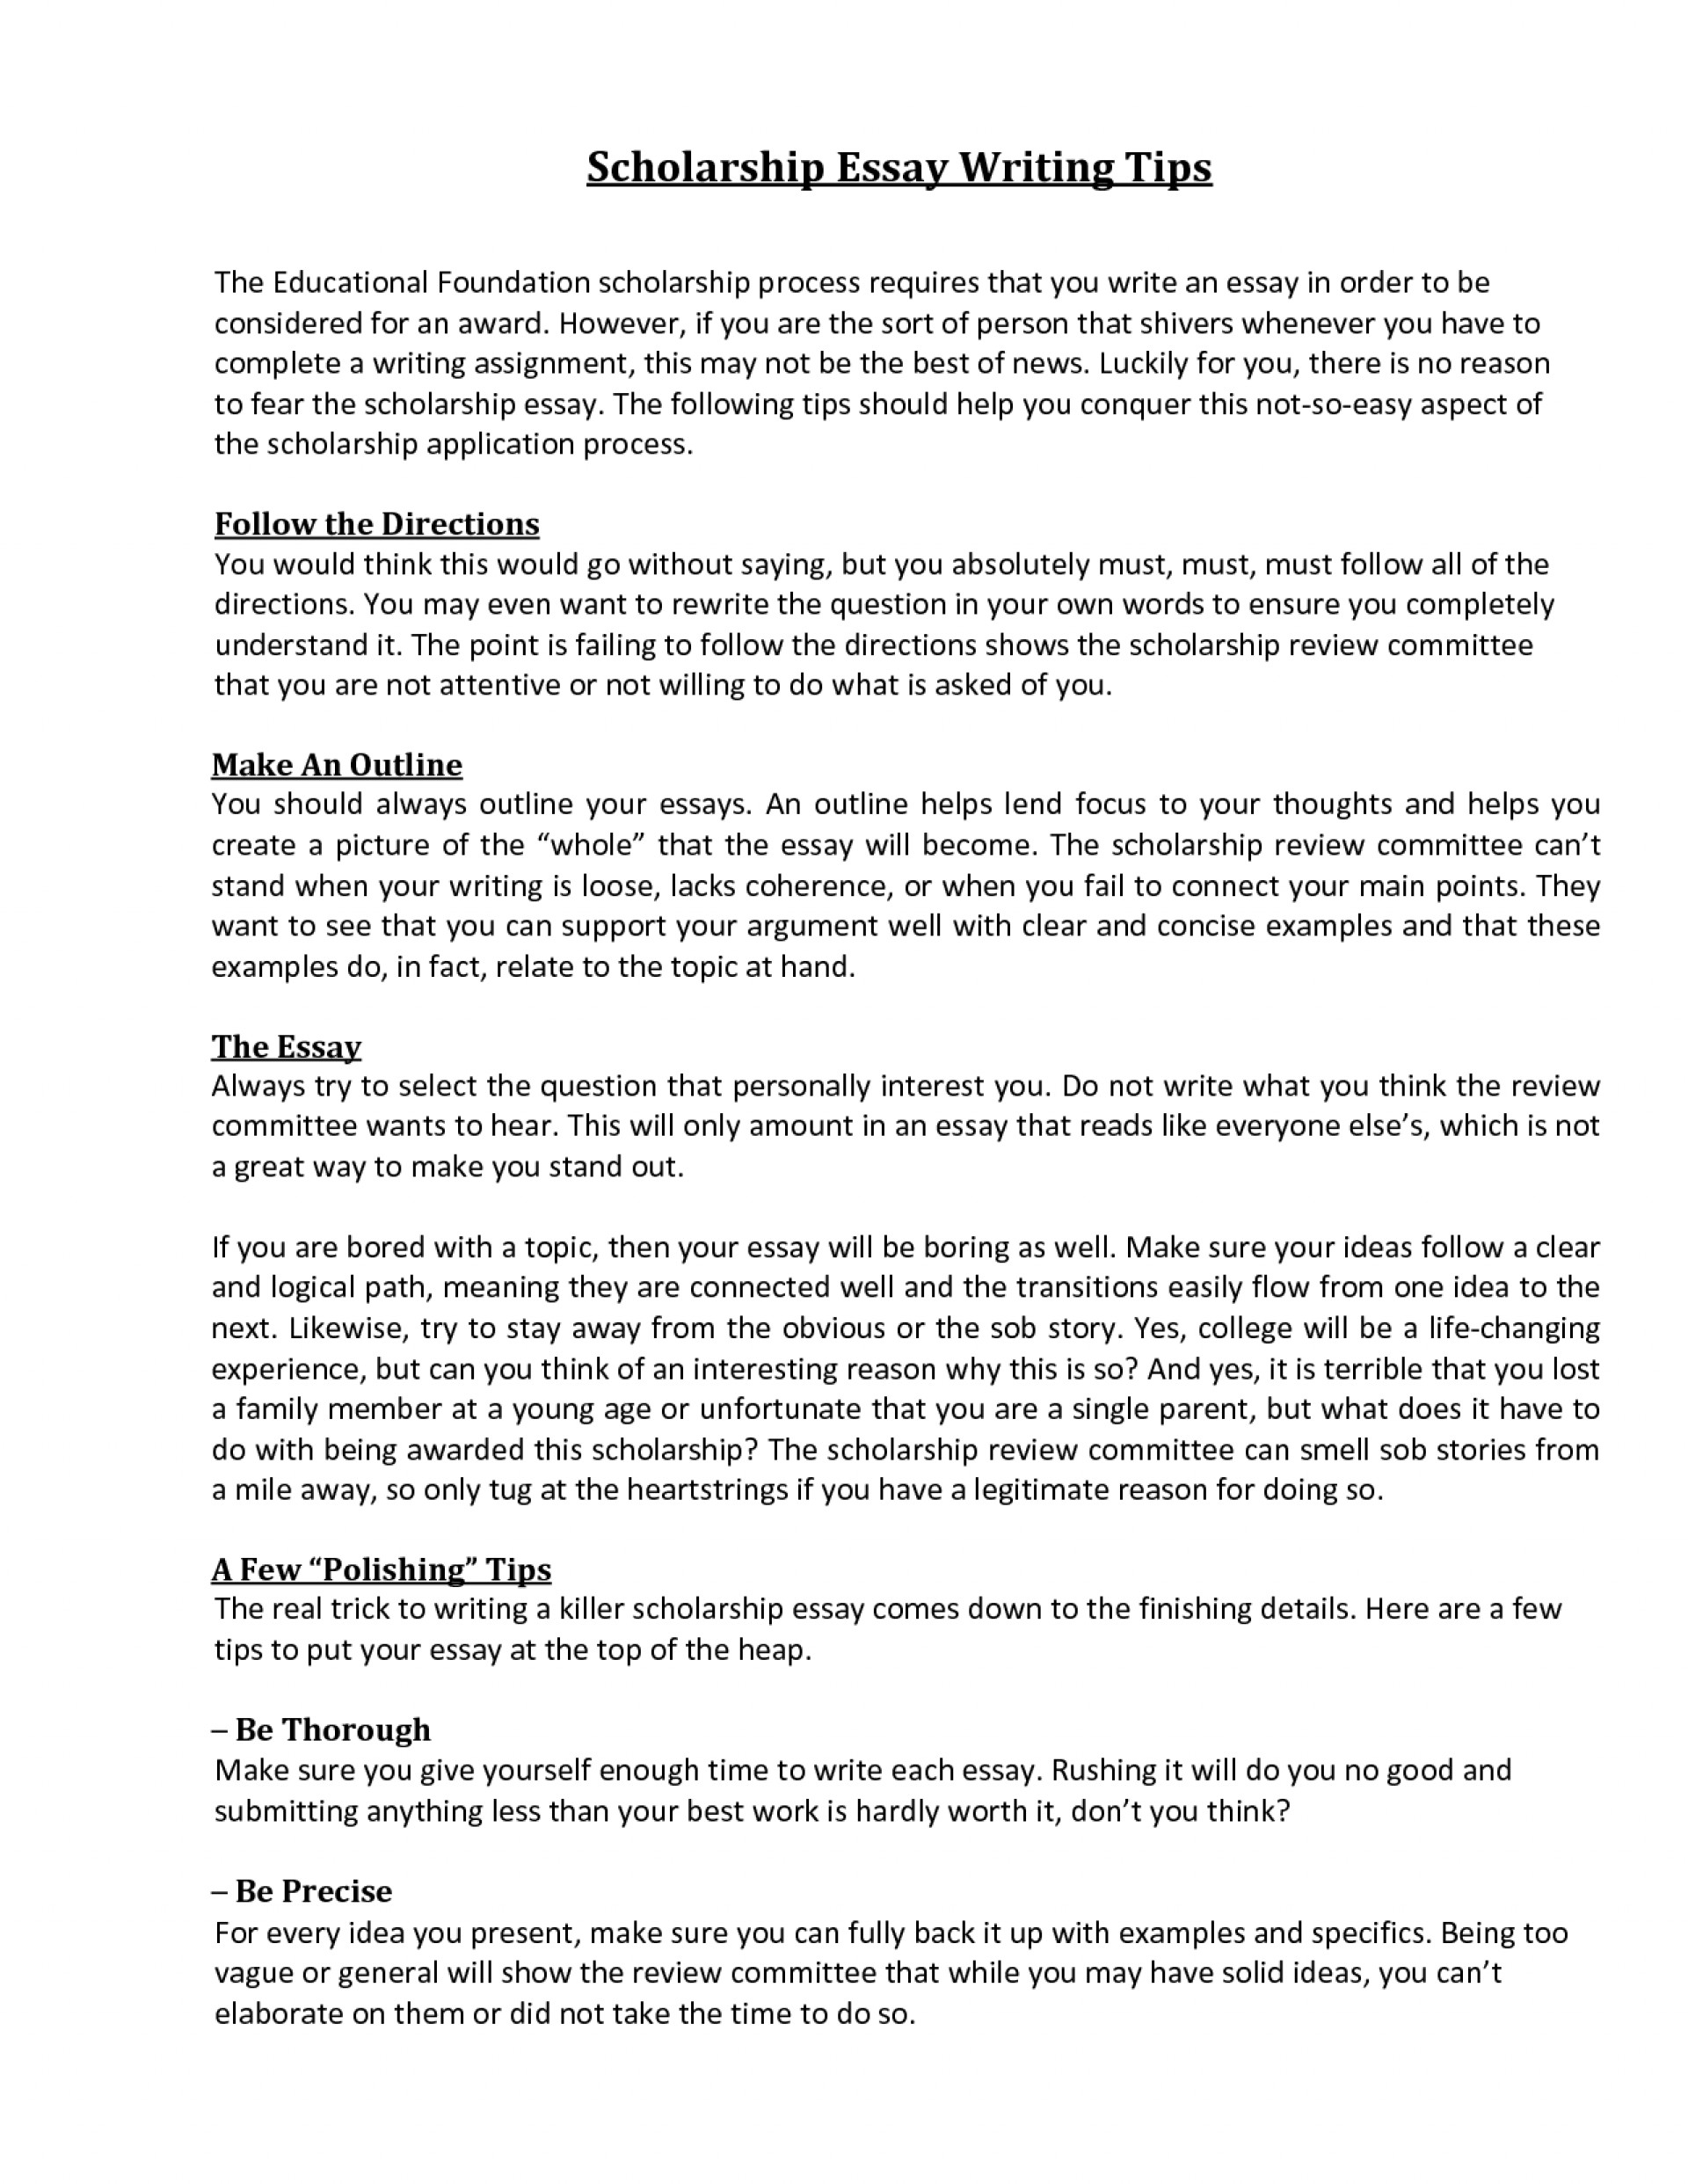 008 Essay Example Nhs Scholarship Prompt Archives Madhurbatter College Topics List Application Examples Gecce Tackletar Magnificent Prompts Robertson 2018-19 Vanderbilt Washington And Lee Johnson 1920